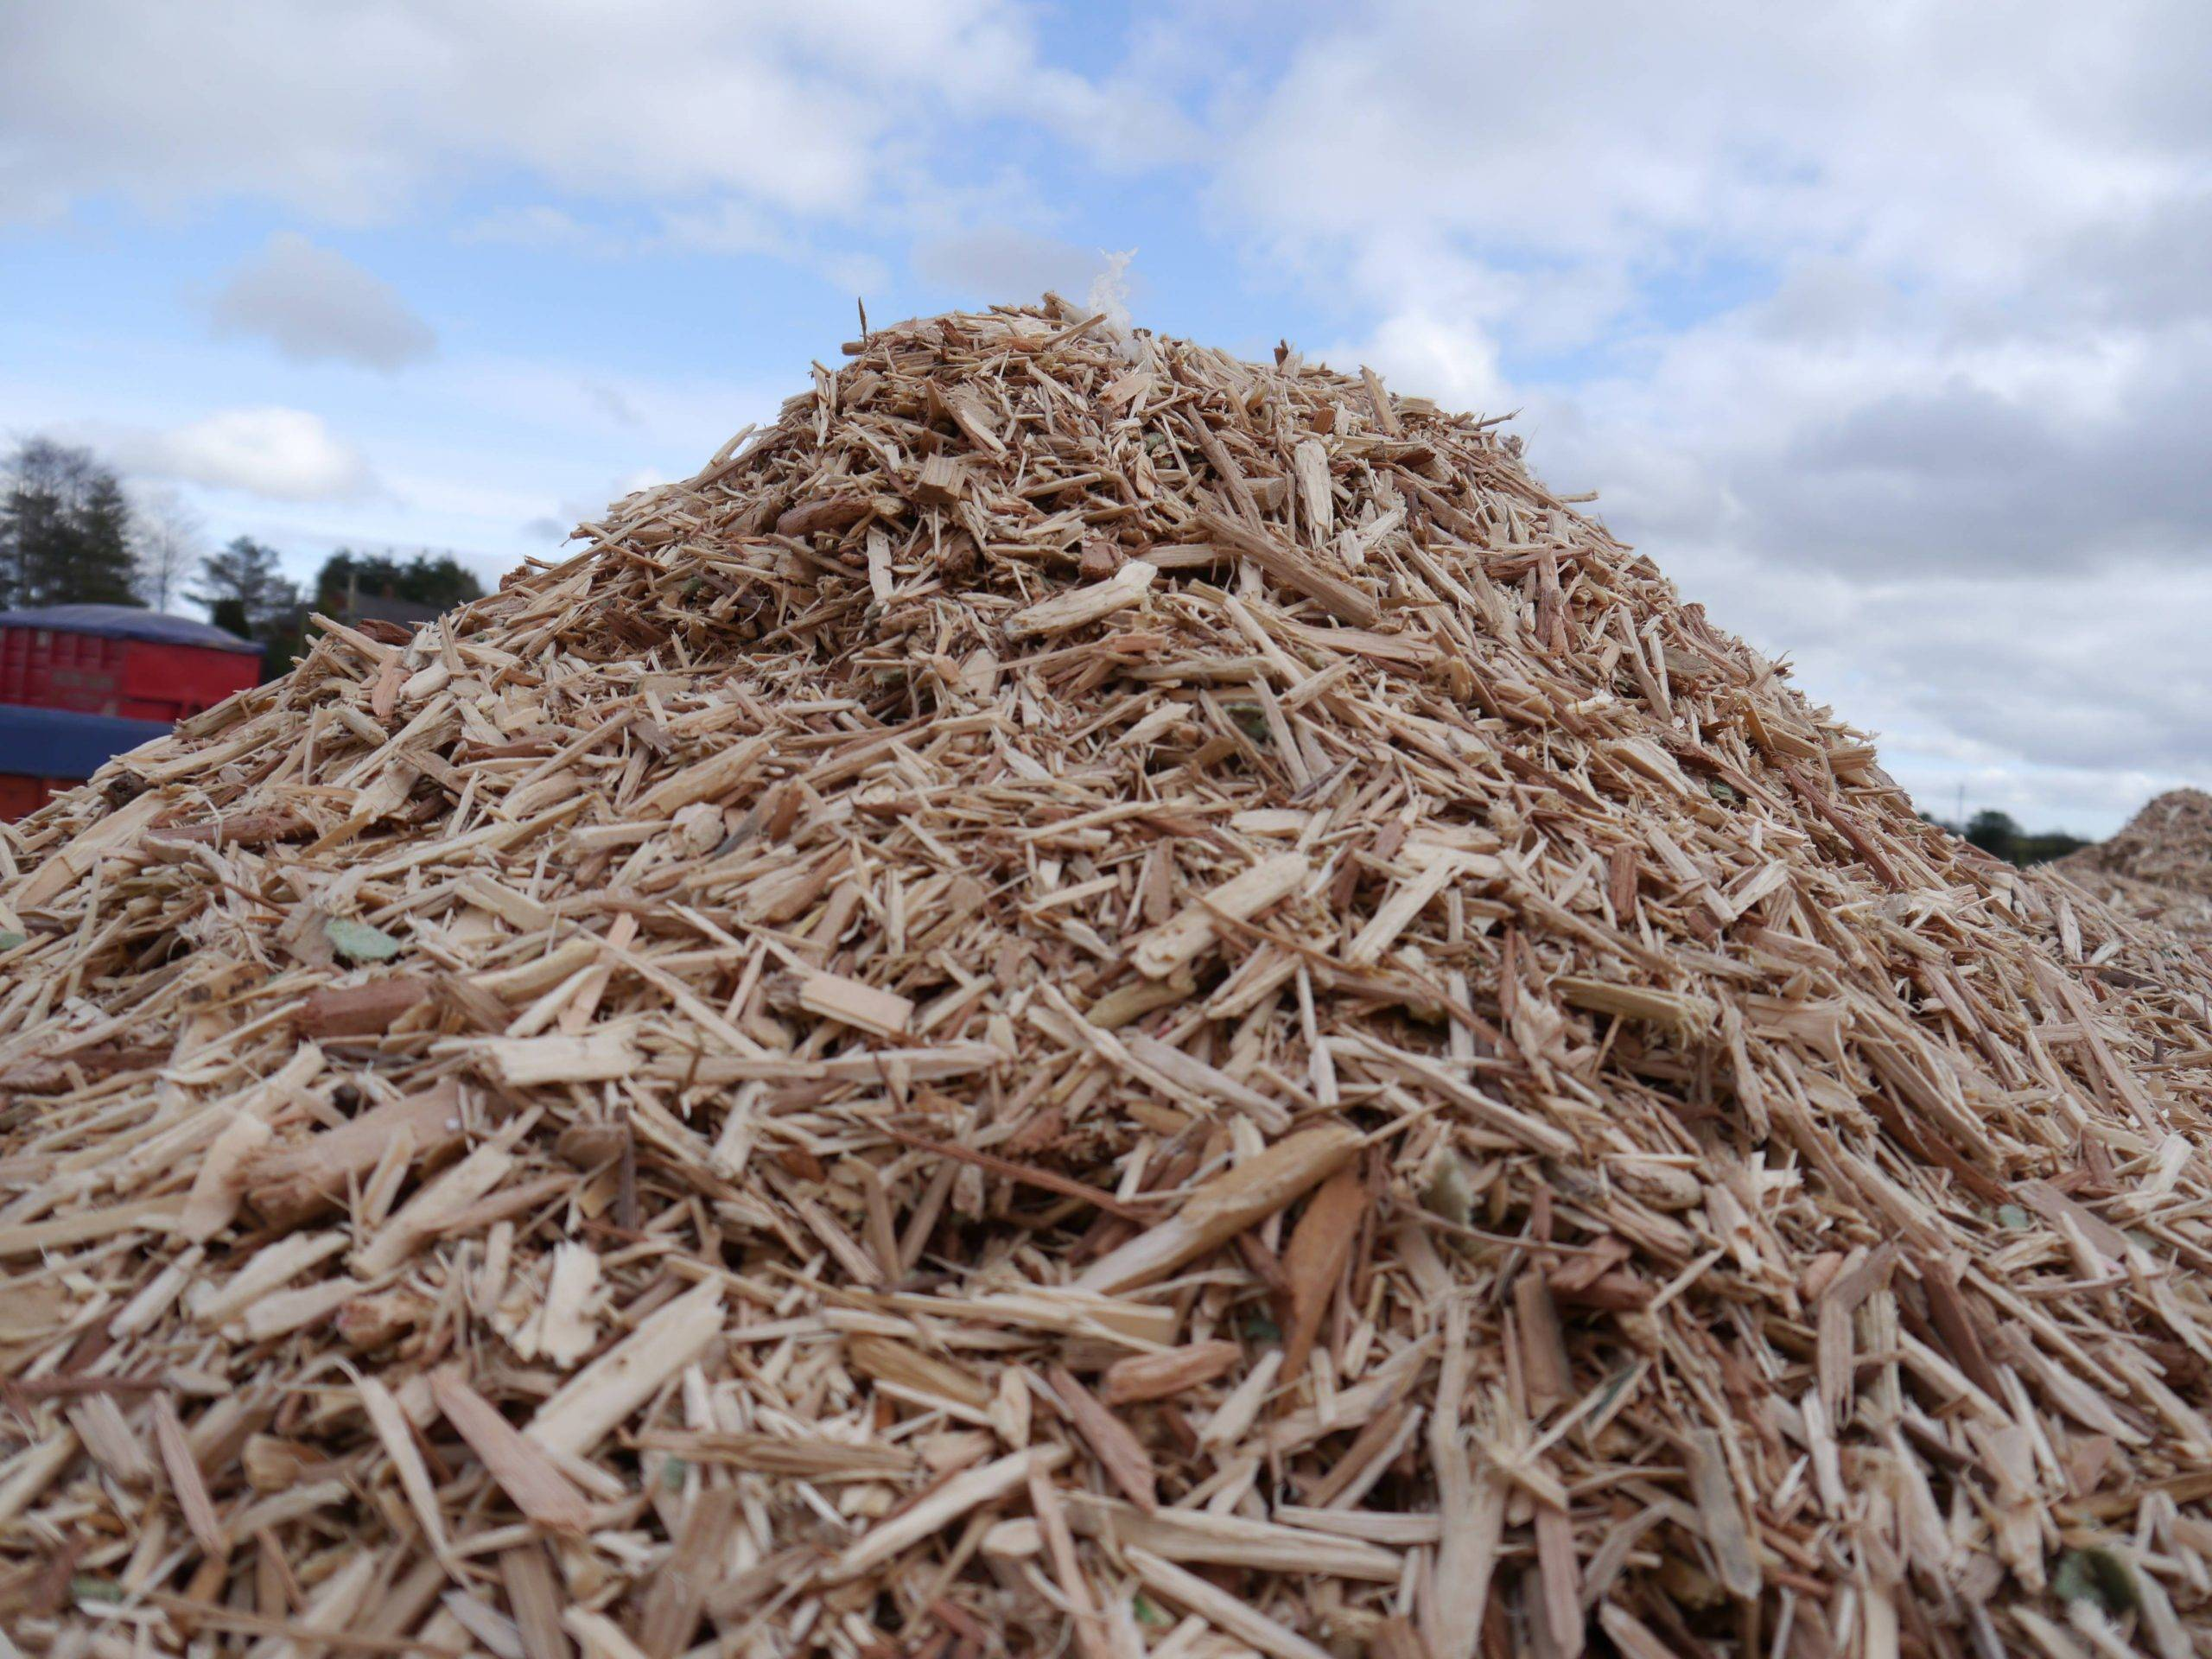 Choose P.H. Winterton & Son for Quality Biomass Fuel in Staffordshire